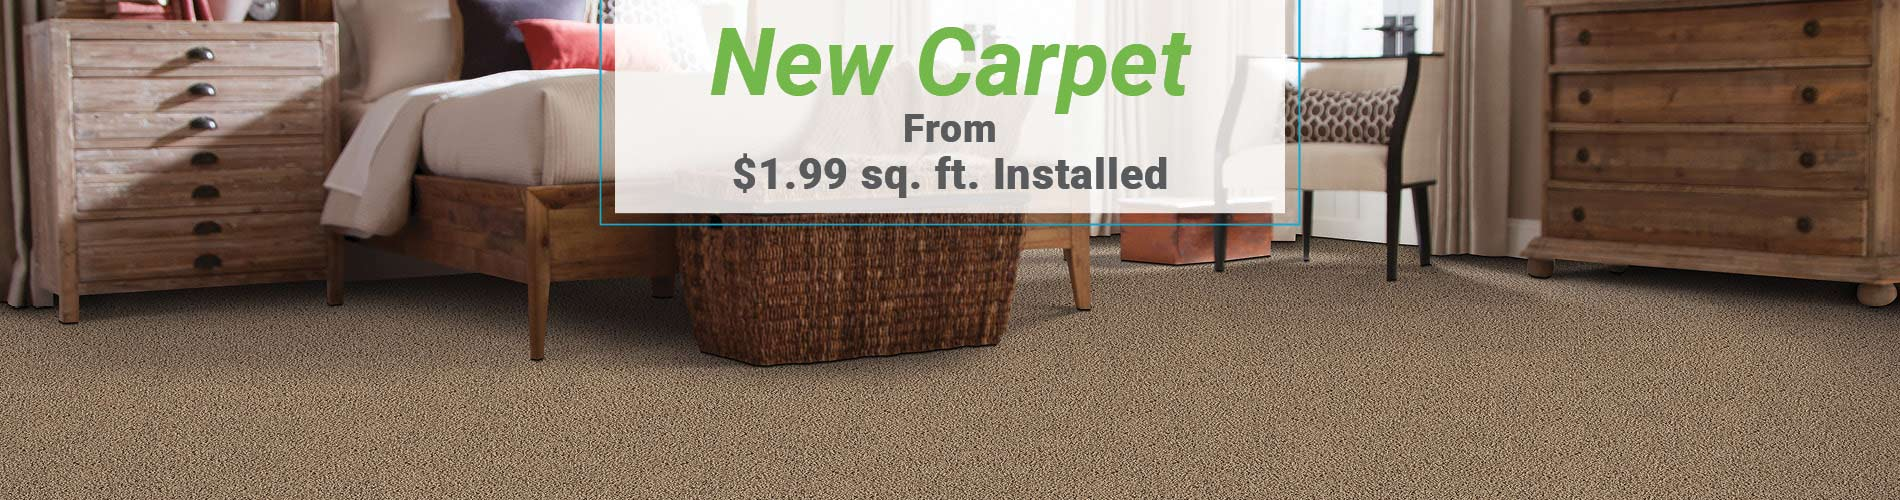 Flooring On Sale | Carpet, Hardwood, Laminate, Vinyl, Tile, Kitchen ...